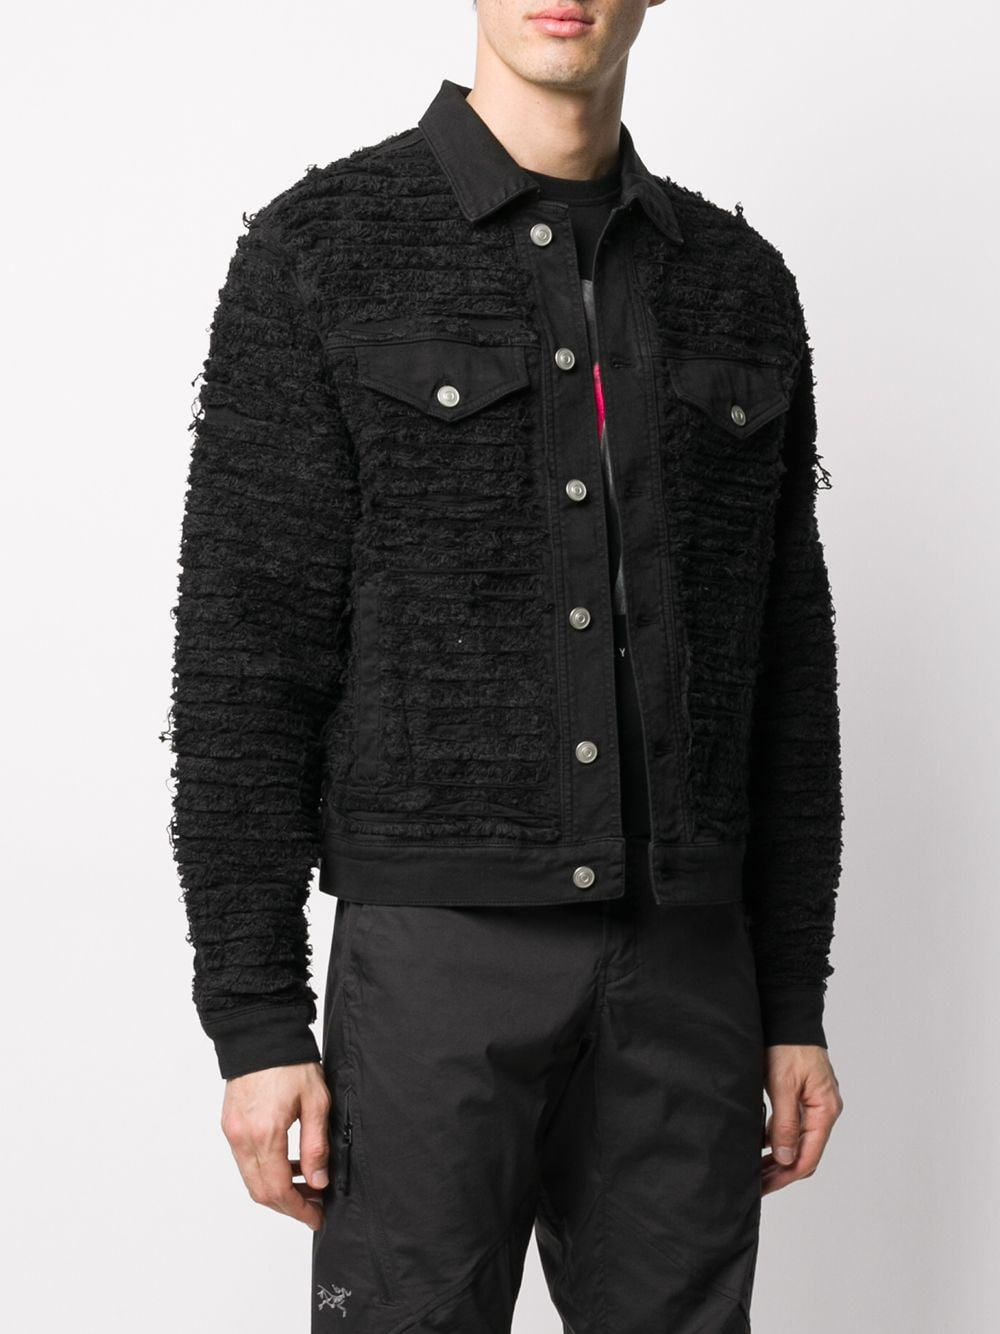 1017 ALYX 9SM MEN BLACKMEANS DENIM JACKET